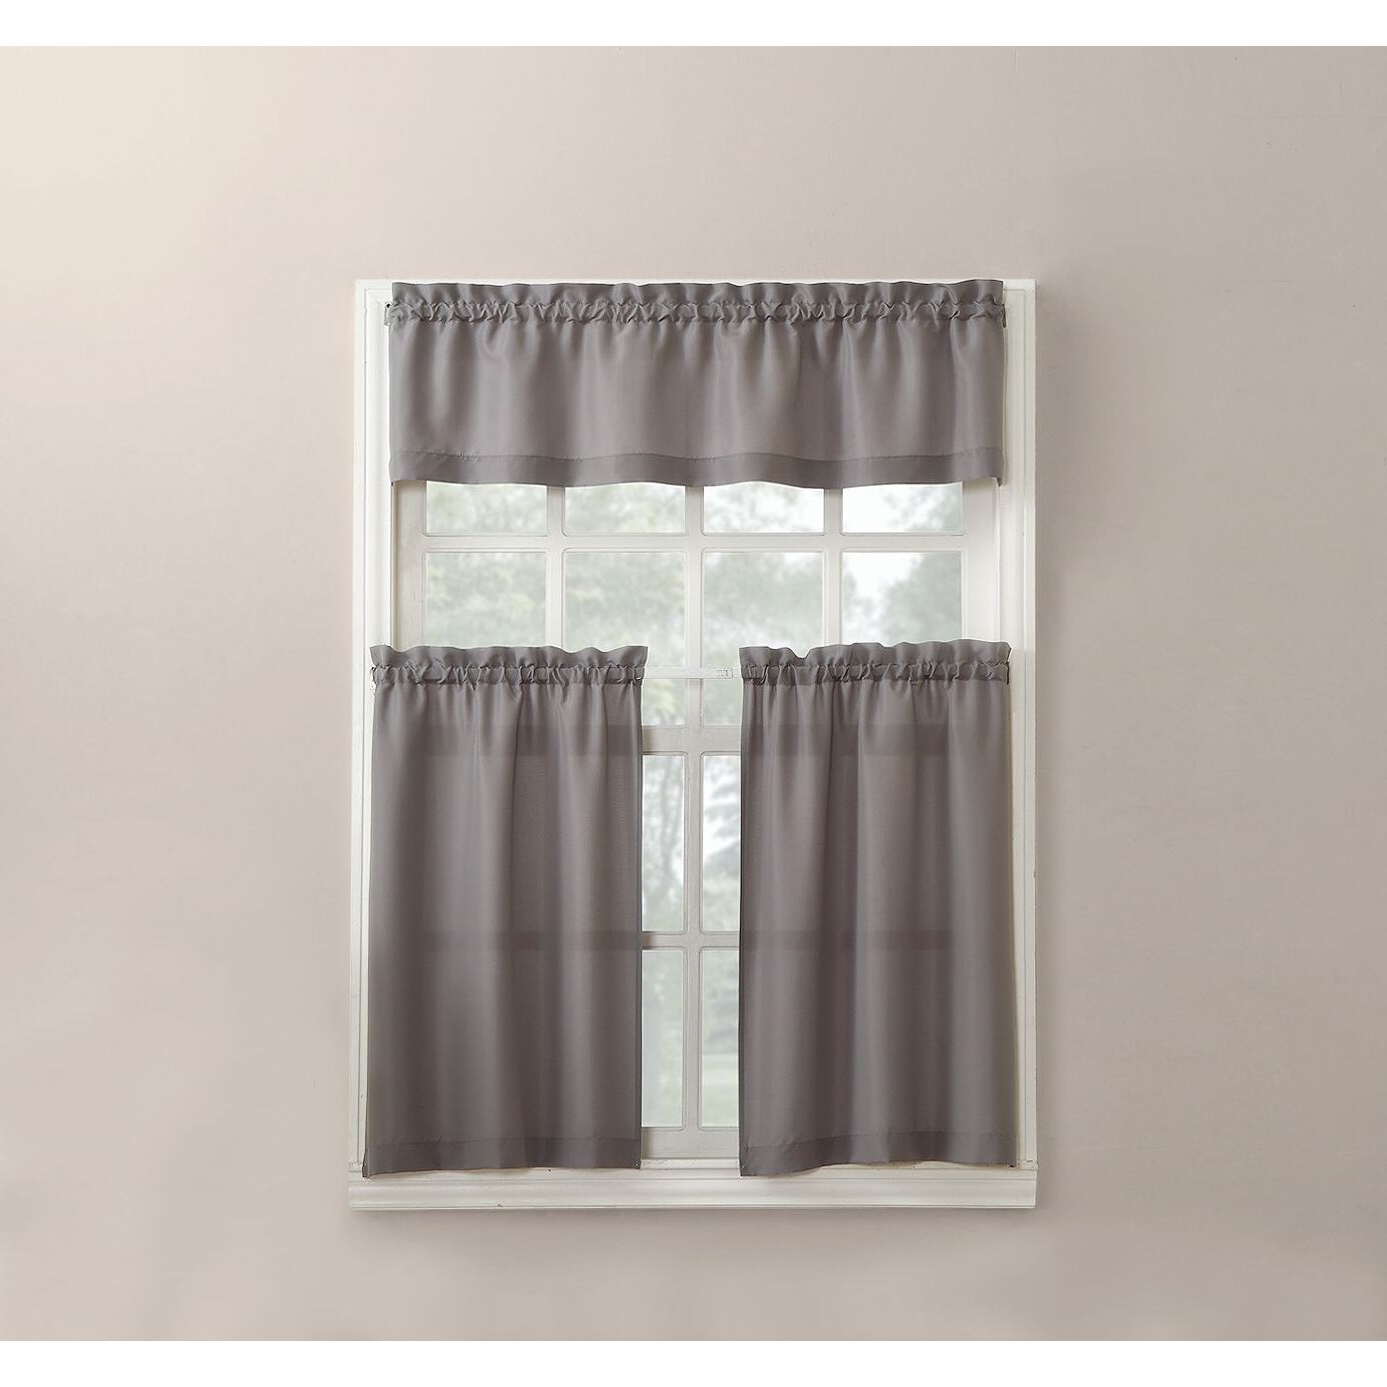 Most Recently Released Bermuda Ruffle Kitchen Curtain Tier Sets Regarding No. 918 Martine Solid Microfiber 3 Piece Kitchen Curtain Valance And Tiers  Set (Gallery 12 of 20)